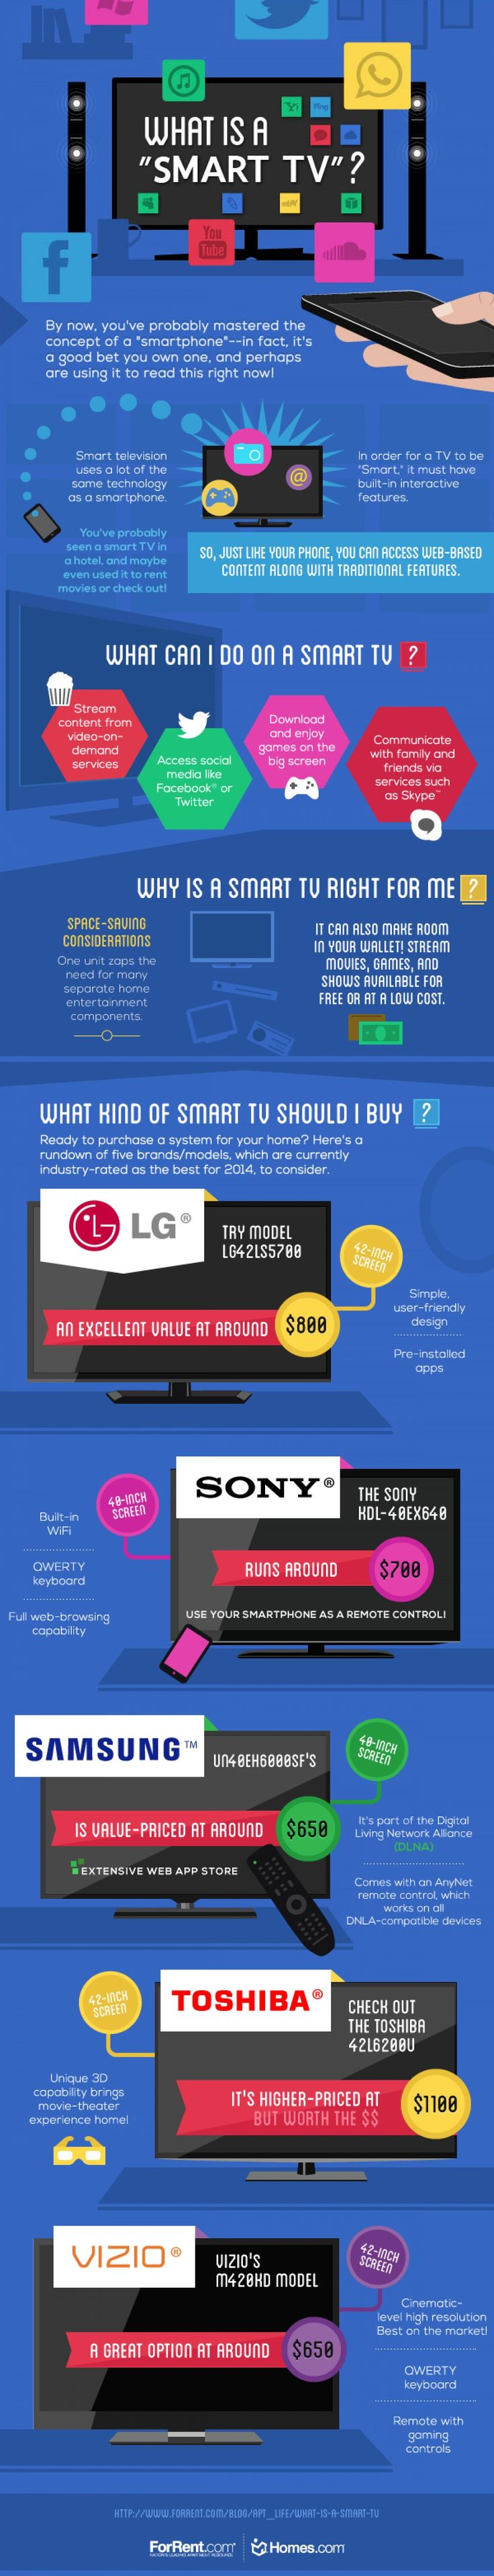 "What Is A ""Smart TV""?   #Infographic #SmartTV #Technology"